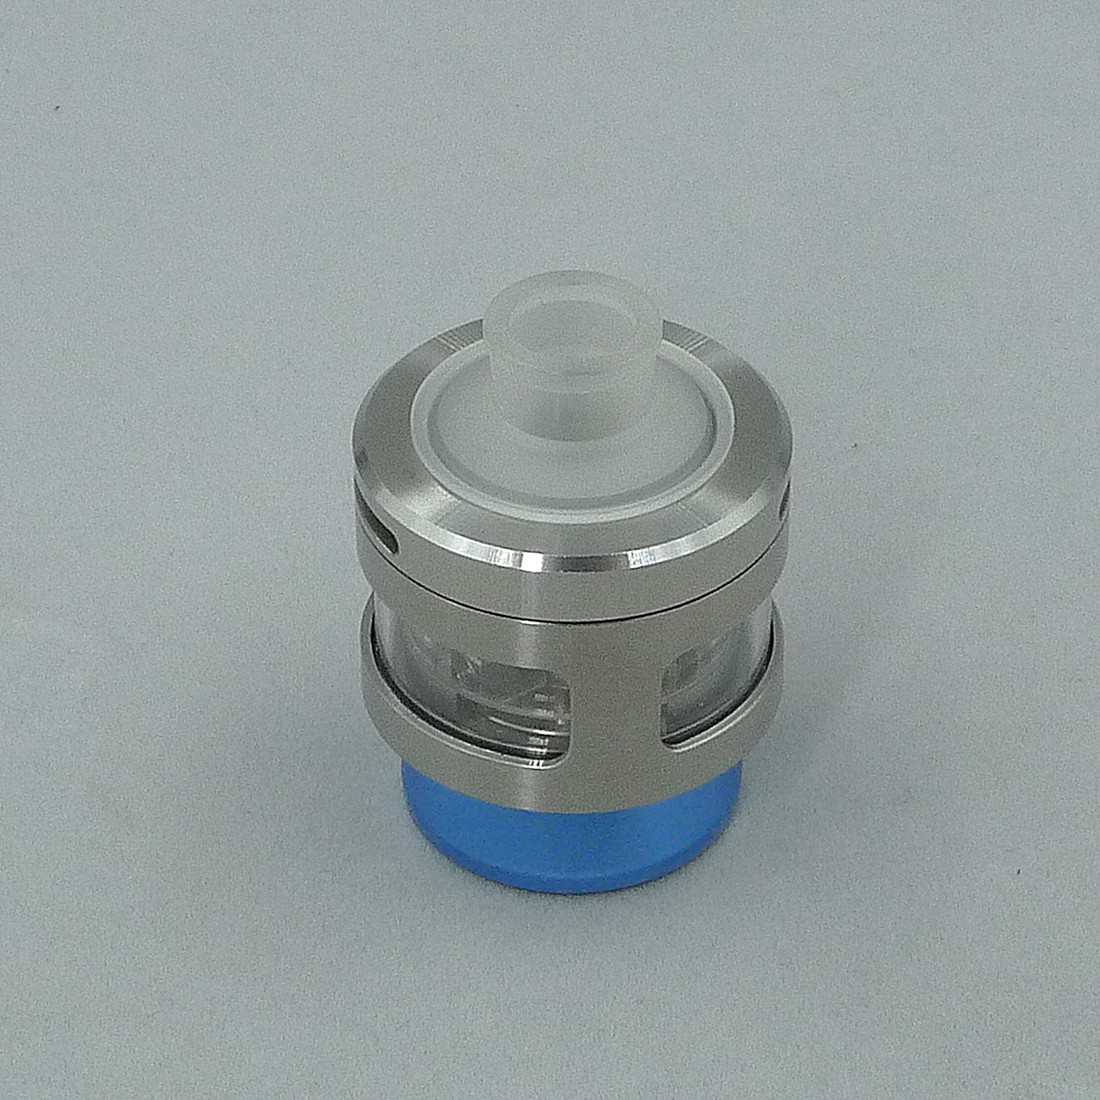 INDE DUO RDA Atomizer Airflow Control With Unique Vortex Flow Design Atomizer With 22mm And 30mm Two Choice Tubes